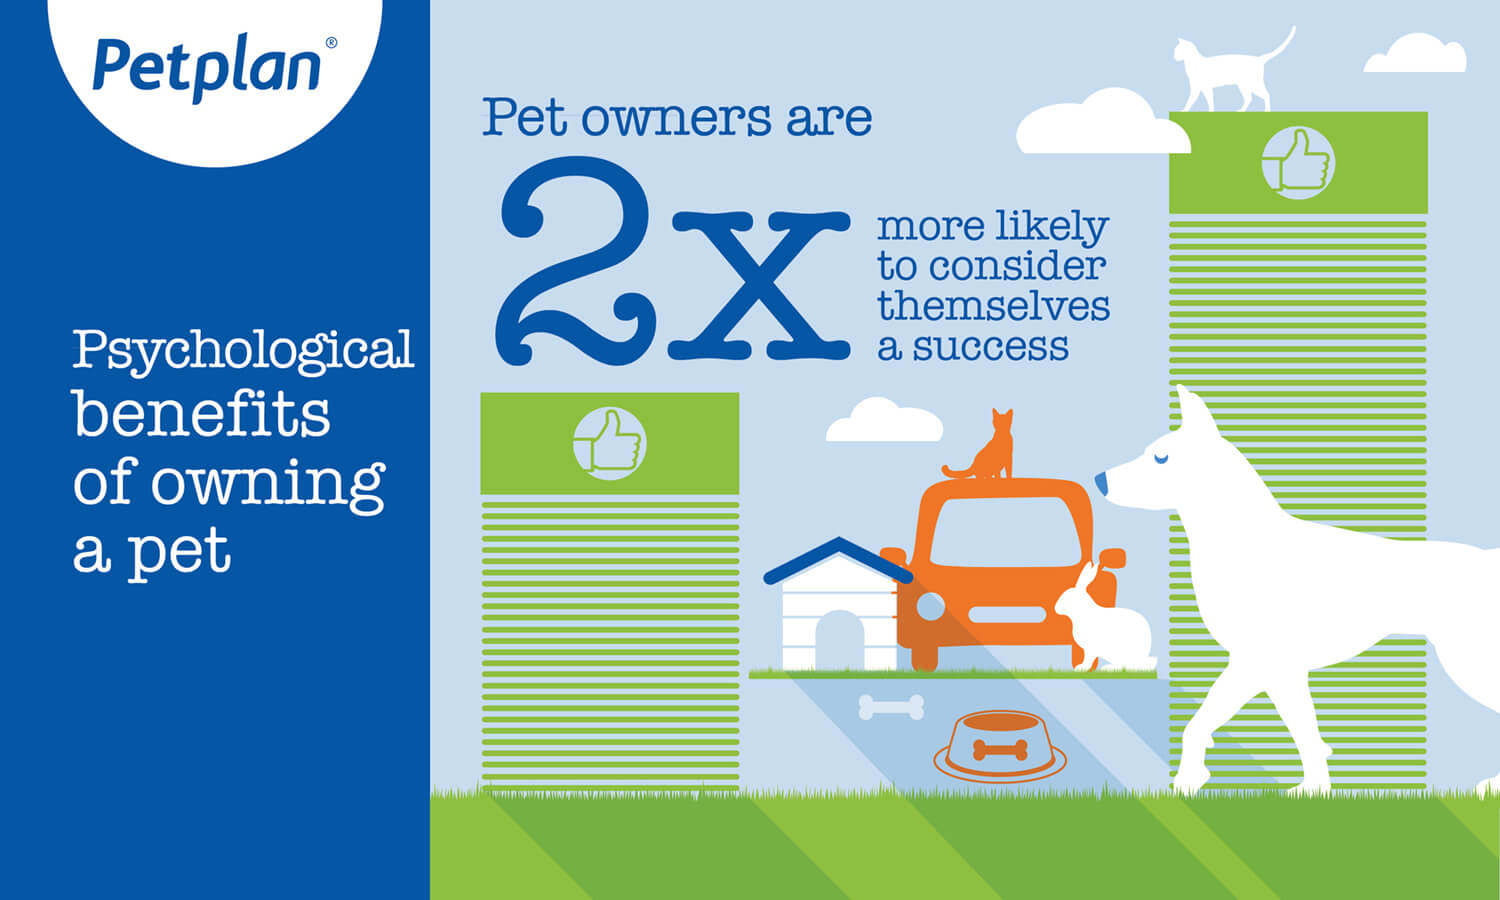 Infographic: Pet owners are 2 x more likely to consider themselves a success img